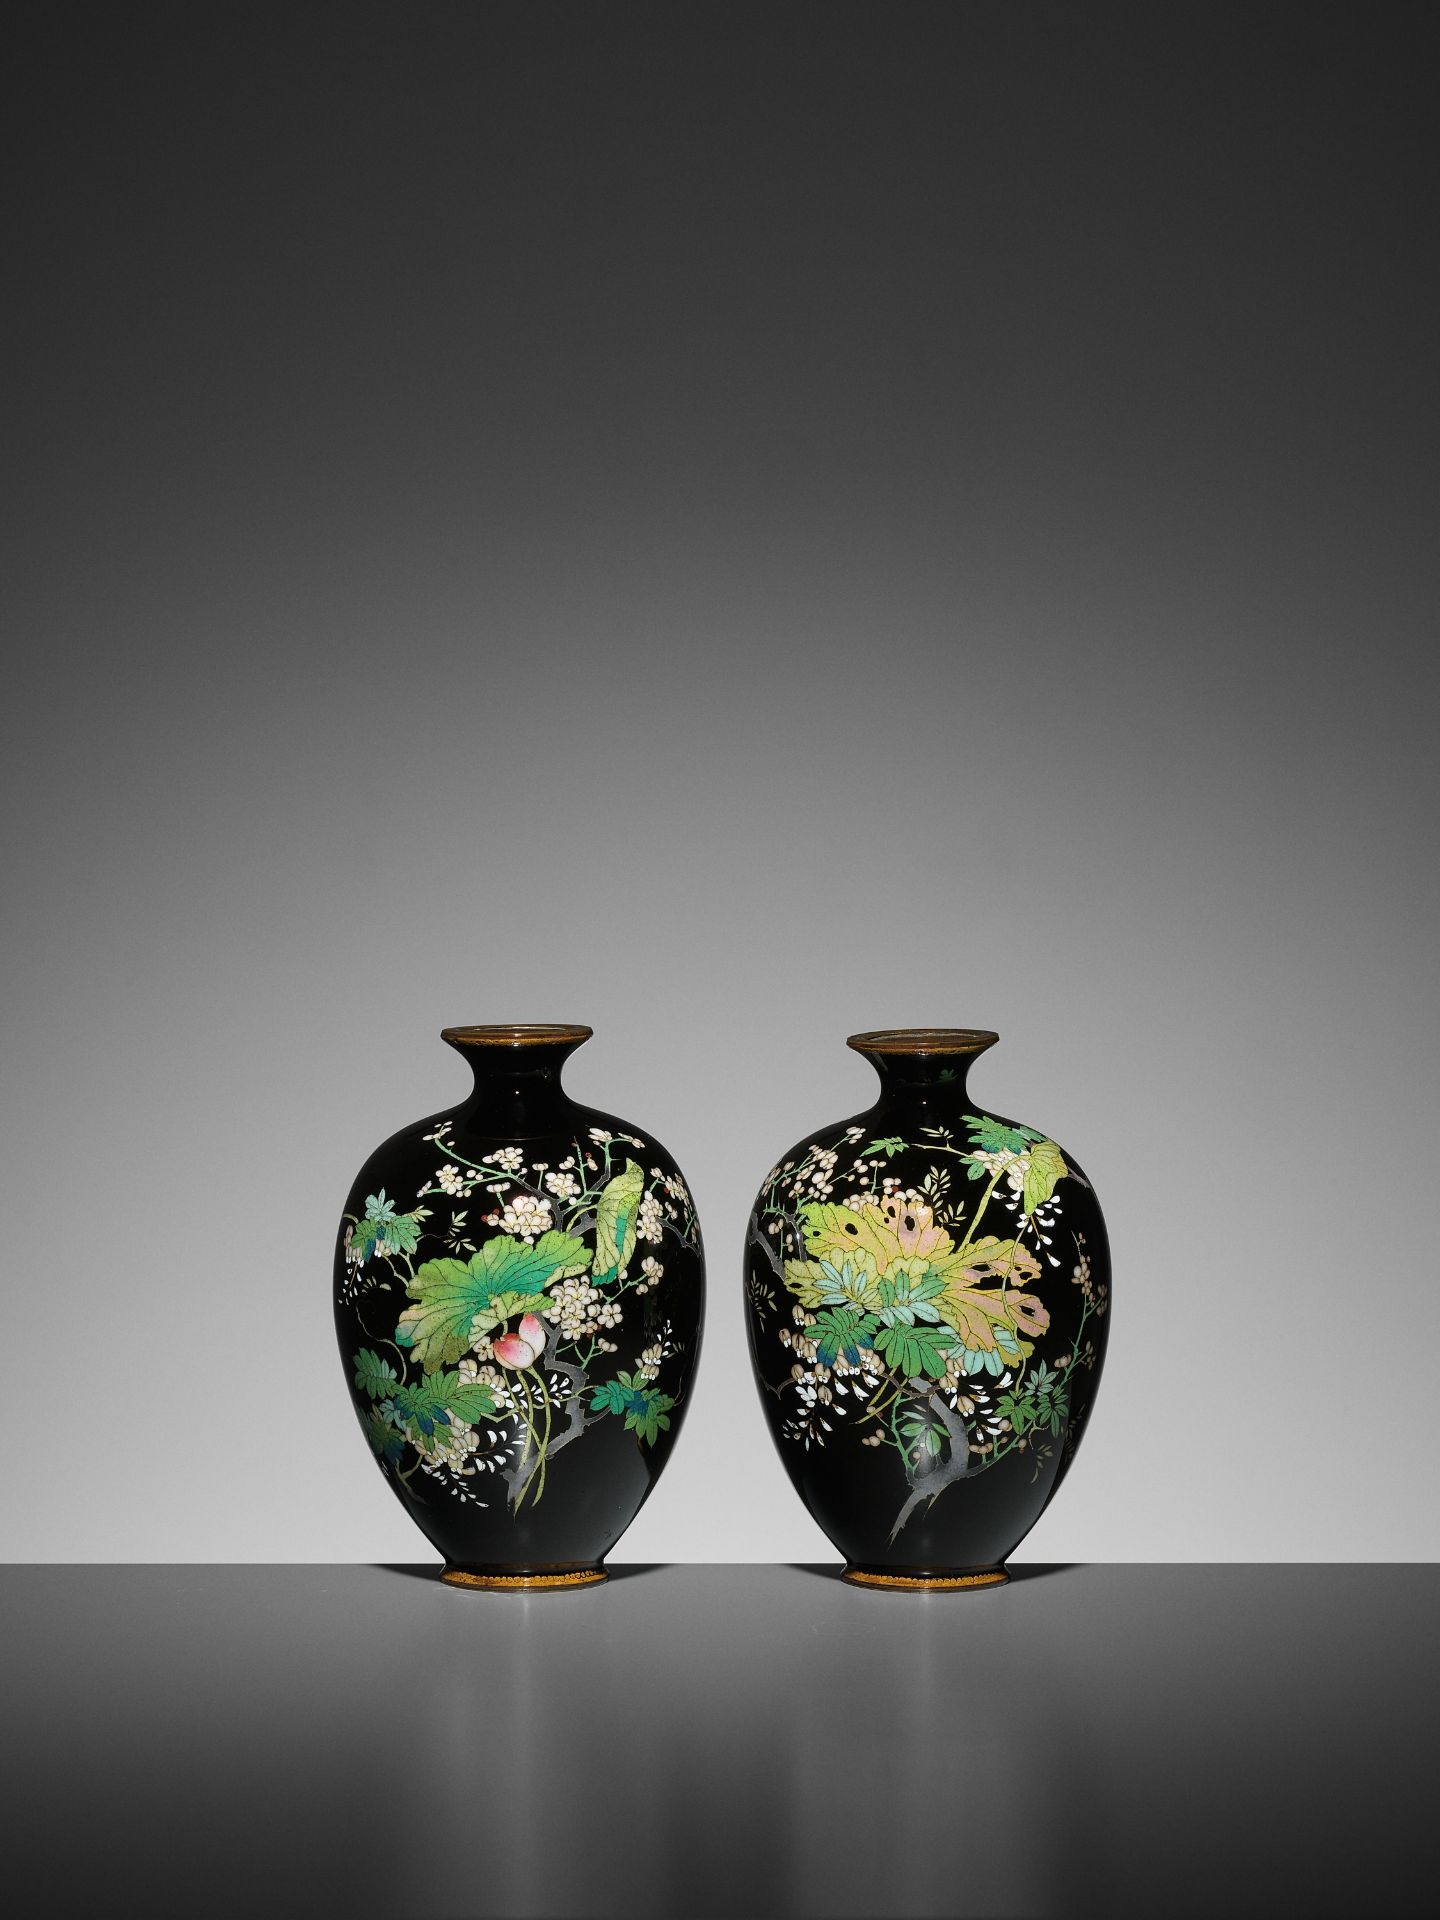 A PAIR OF SMALL CLOISONNE VASES